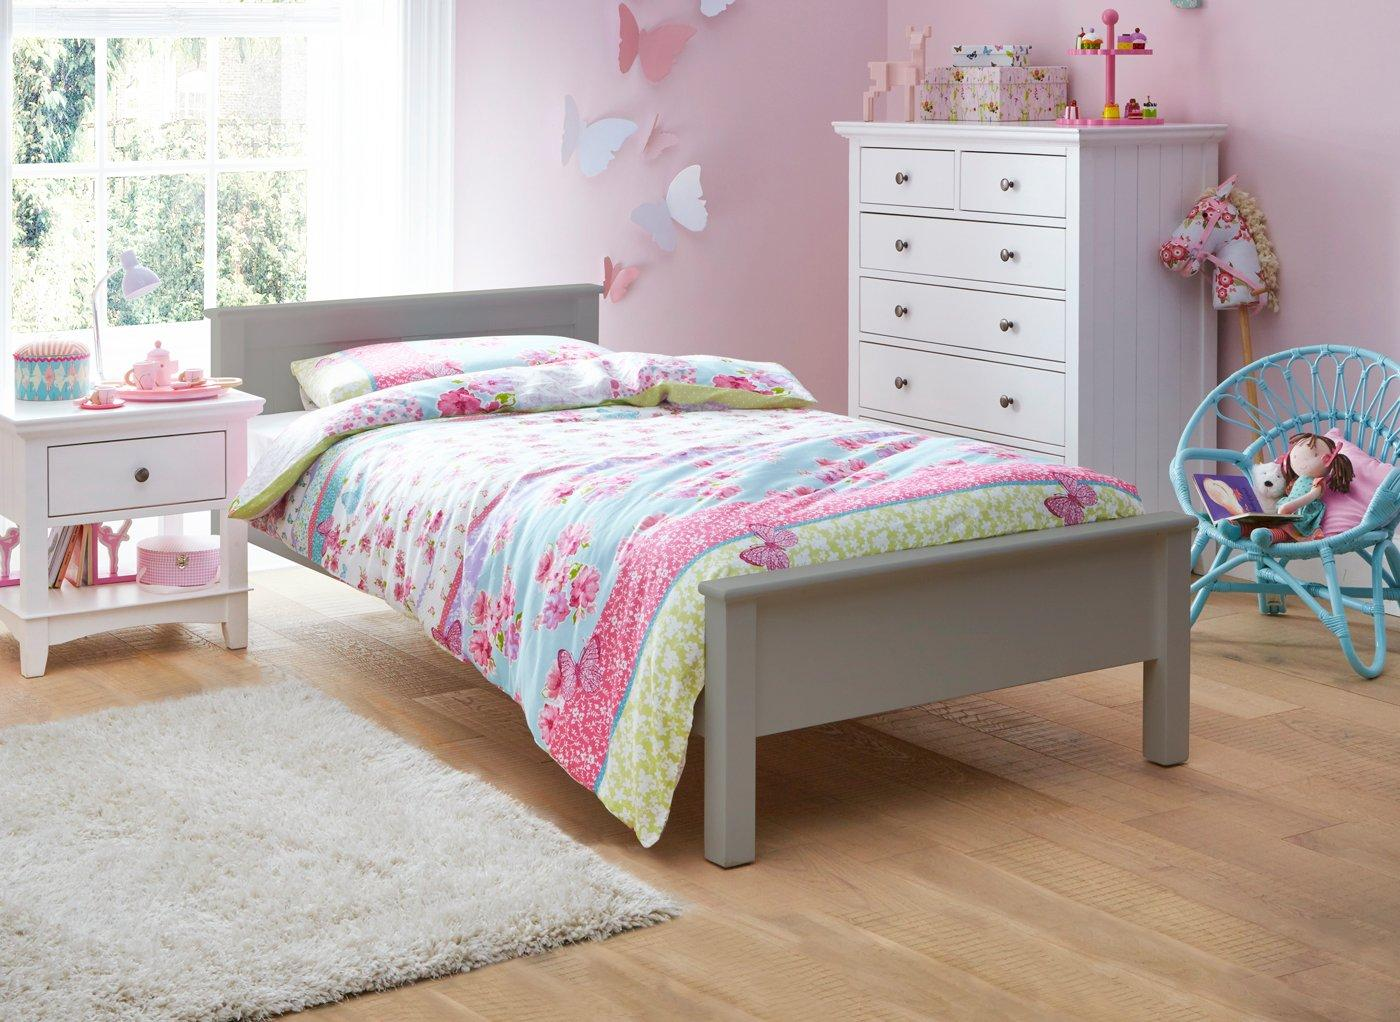 Hutchin Wooden Bed Frame Kids Beds Kids Dreams